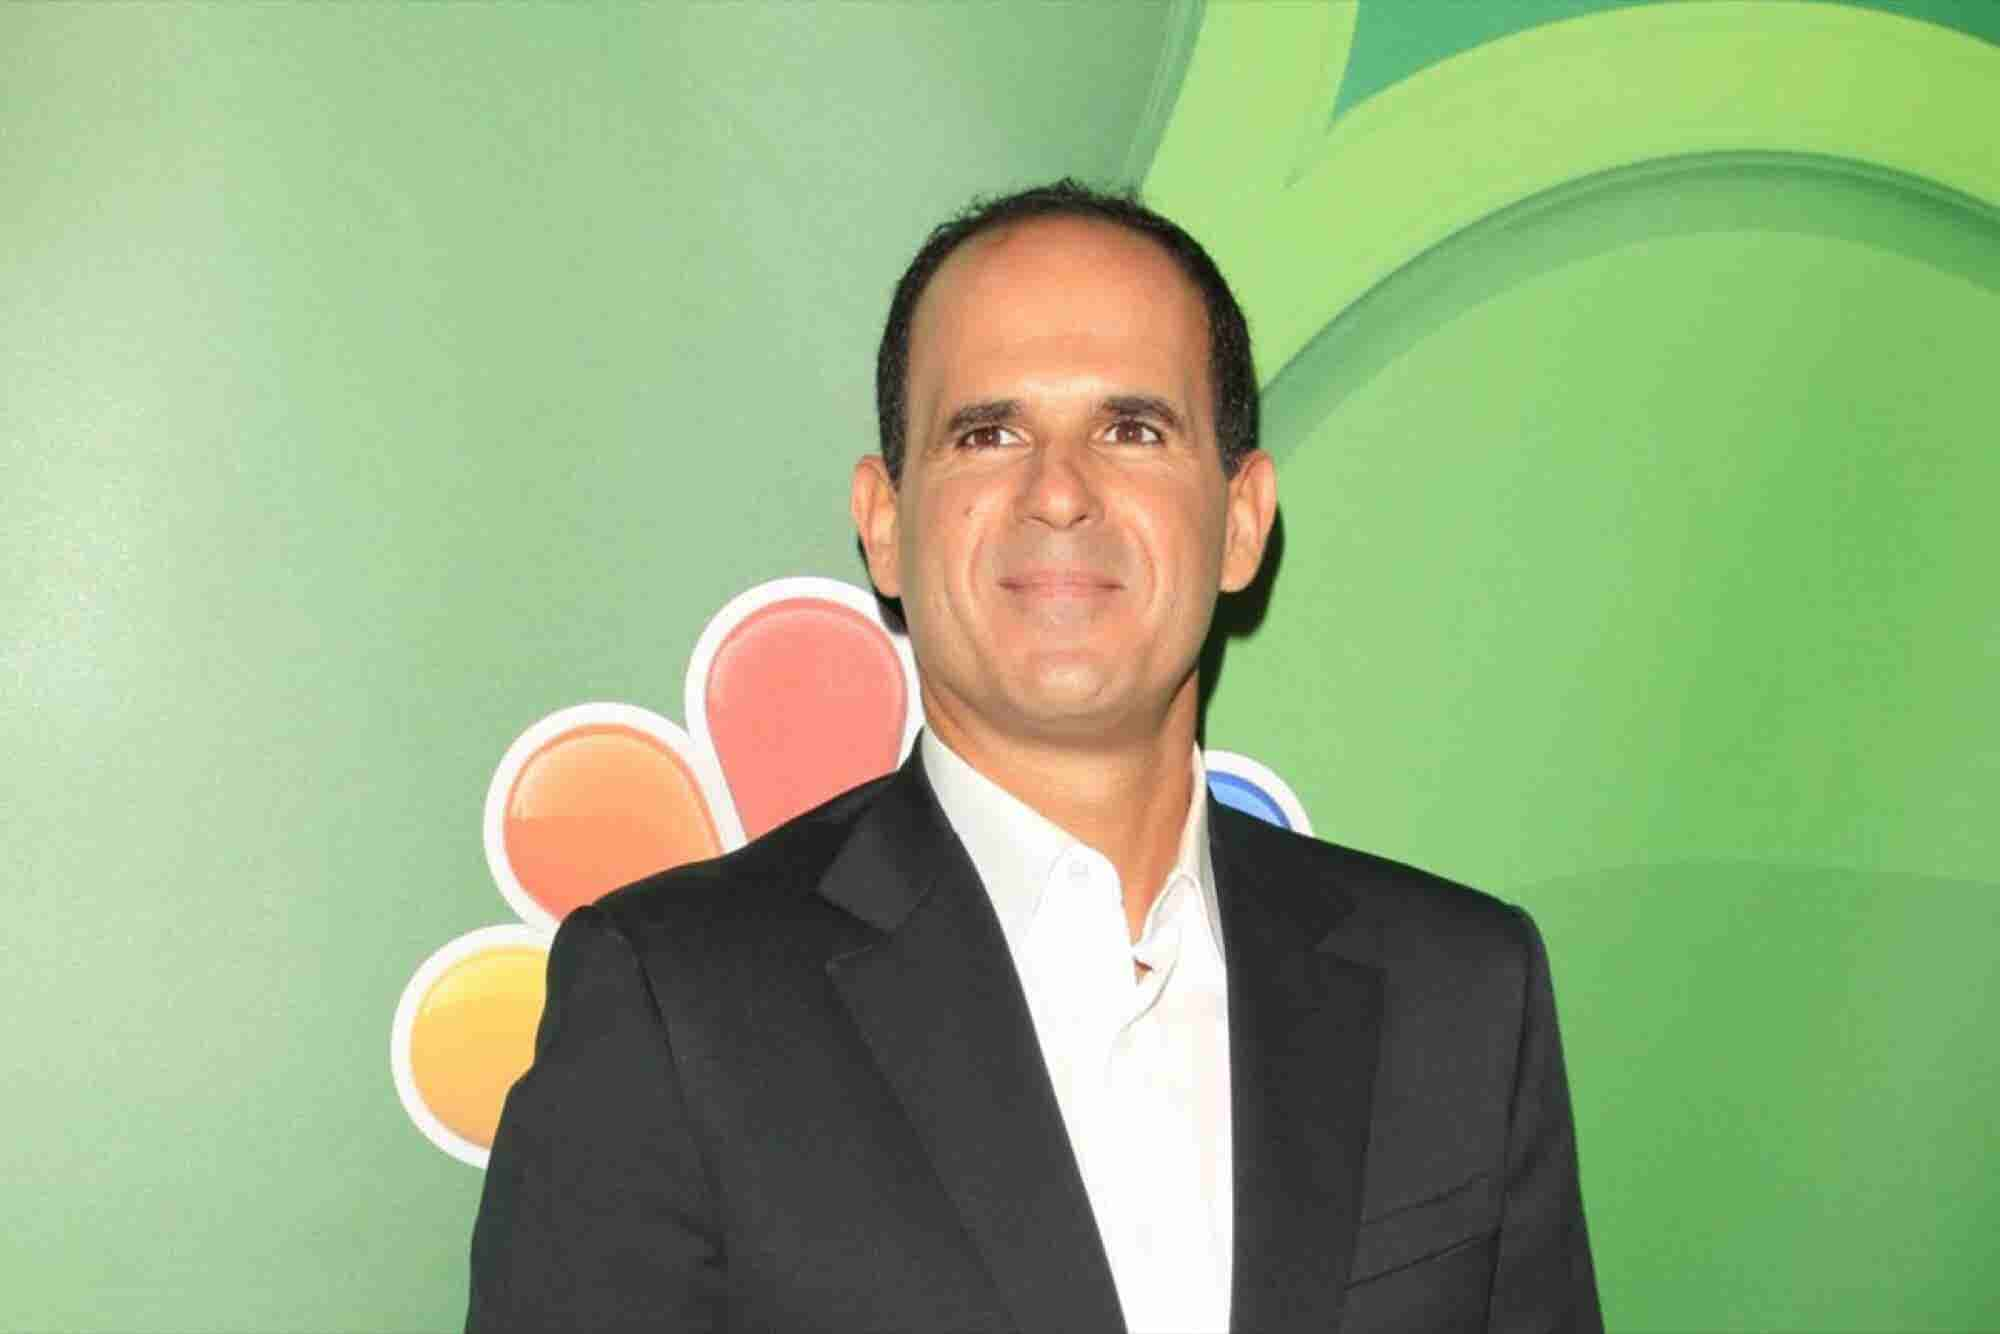 Marcus Lemonis's Top 10 Tips for Businesses This Holiday Season